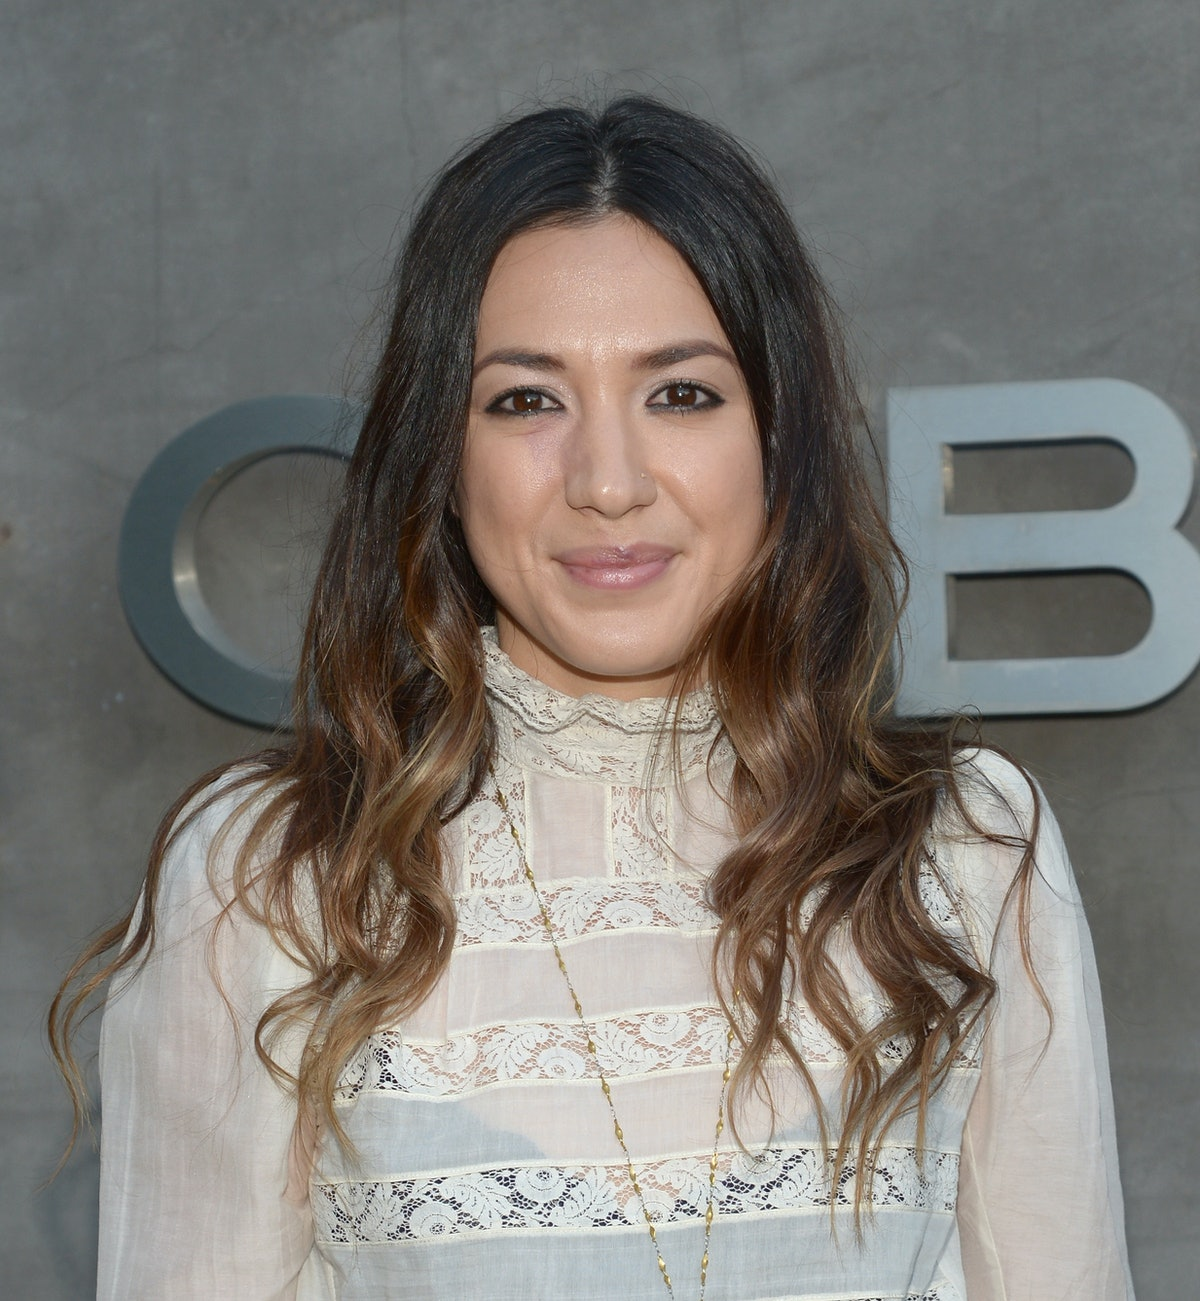 Michelle Branch's Breastfeeding Photo From Her Wedding Day Is An Iconic Piece Of Art